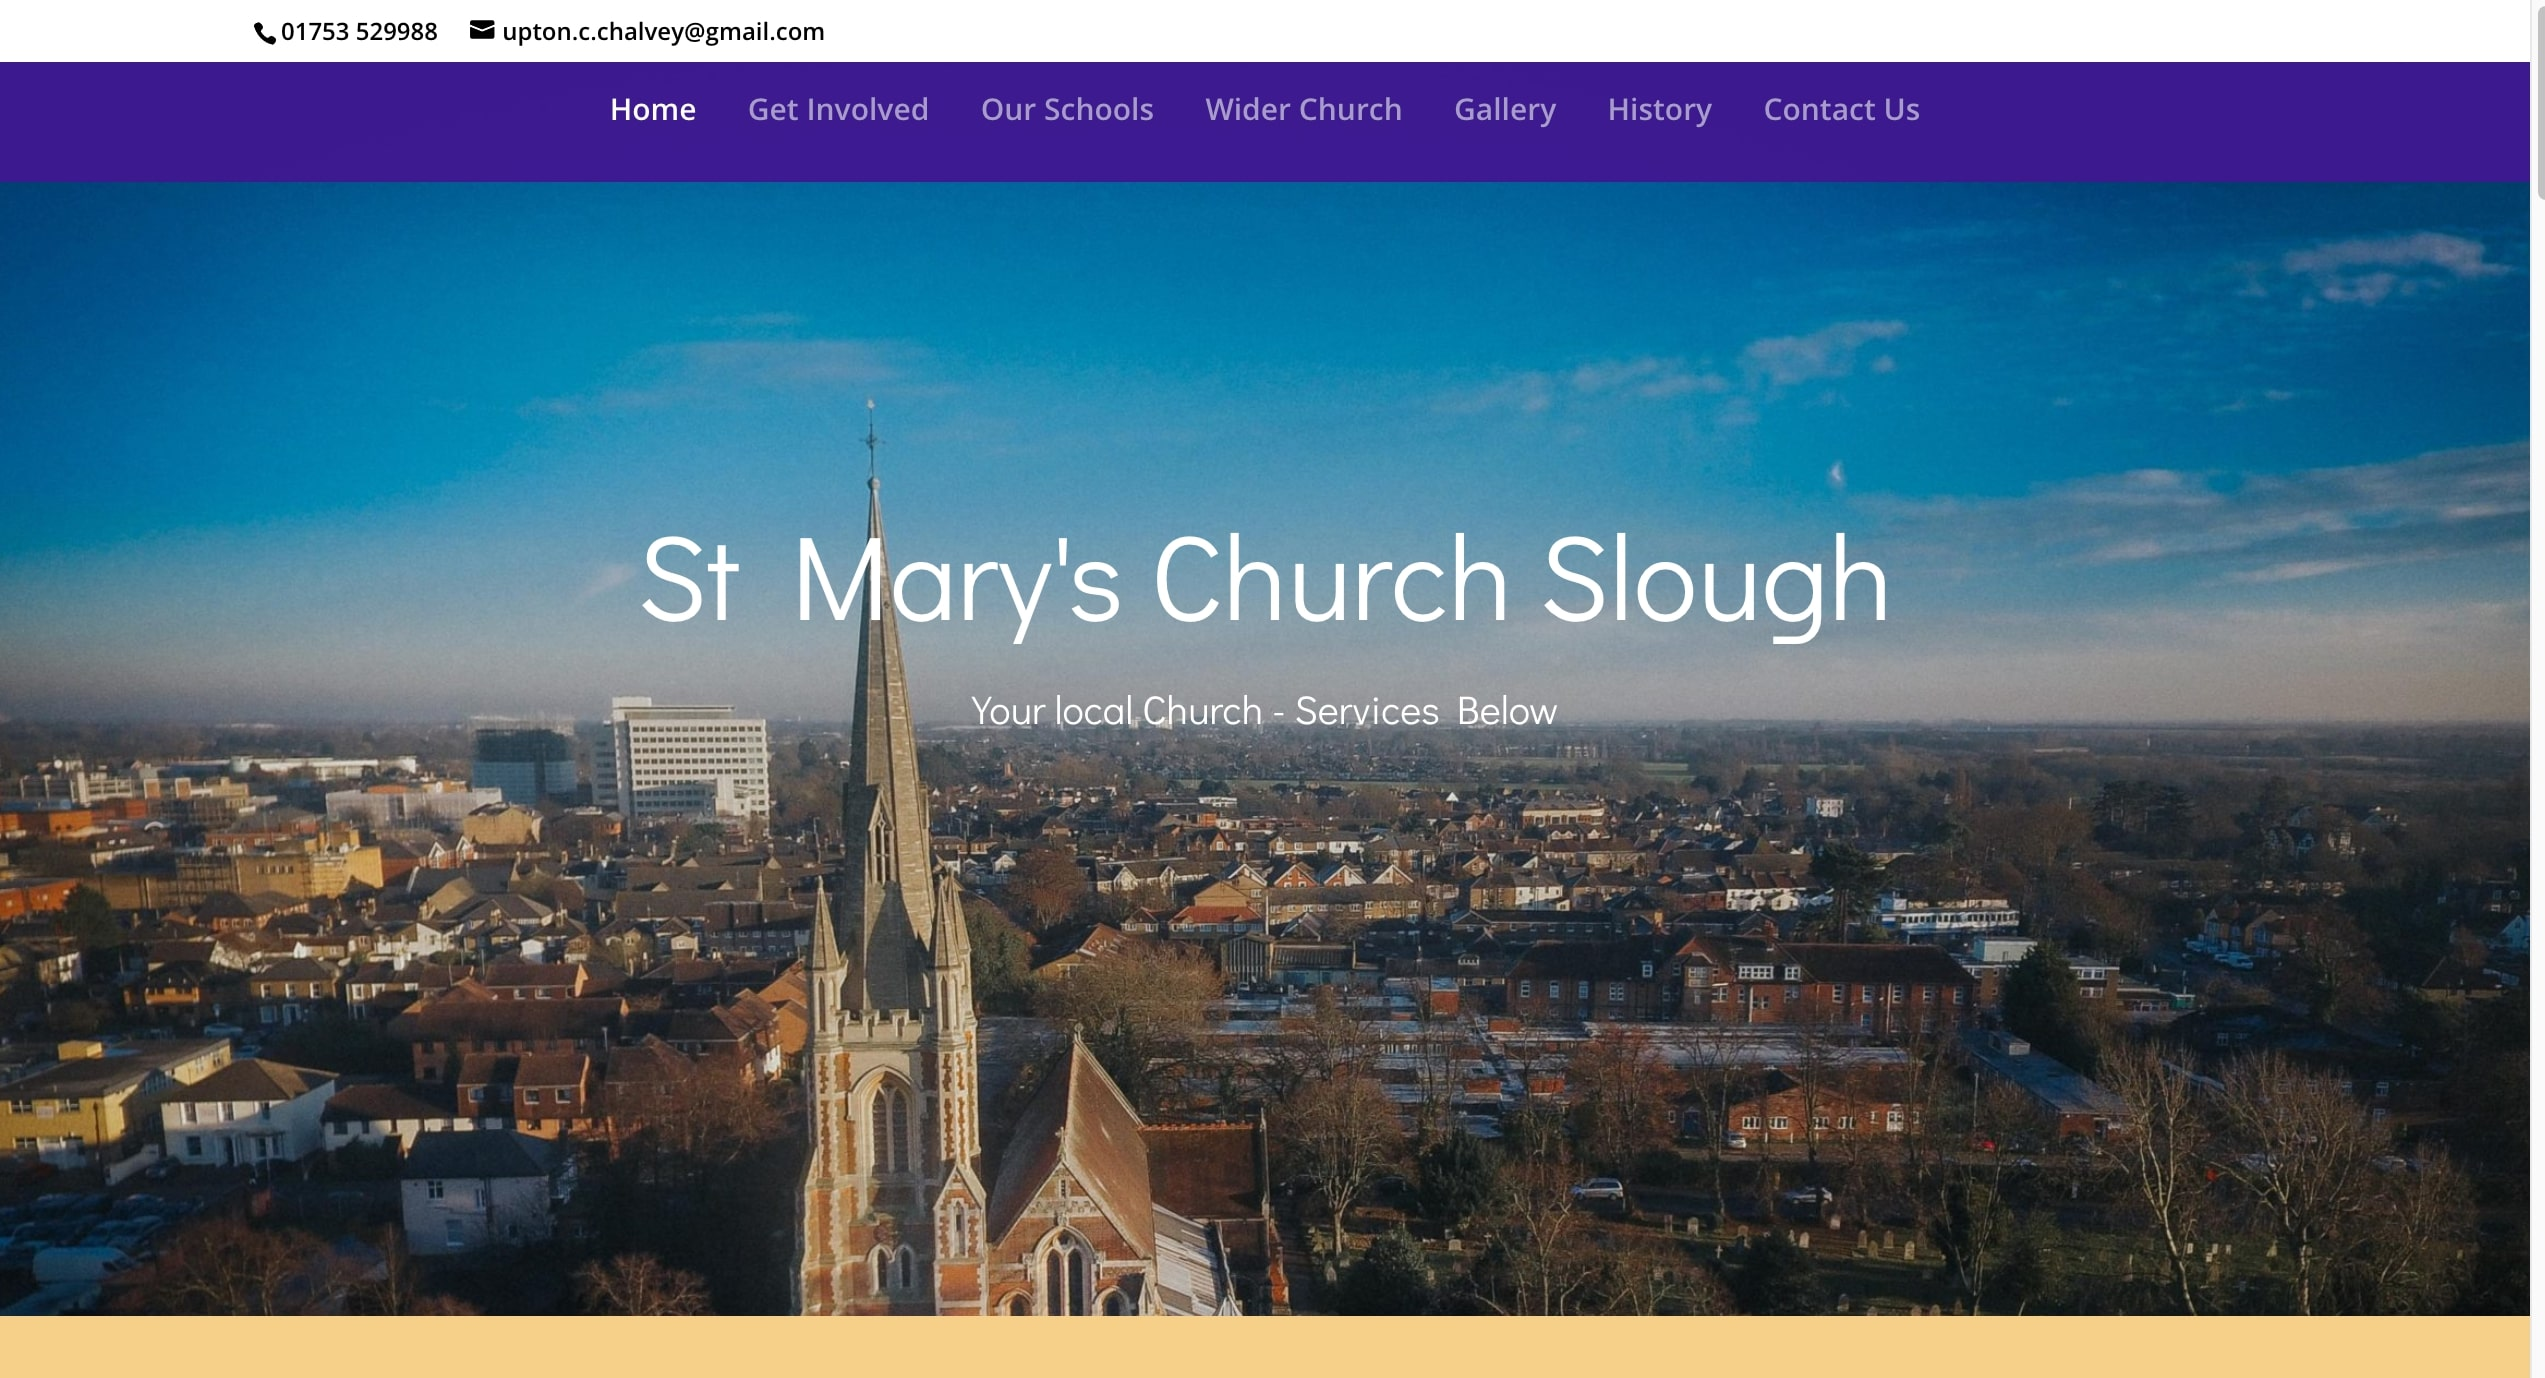 The Home page of St Marys Church In Slough - built using a off-the-shelf themed design